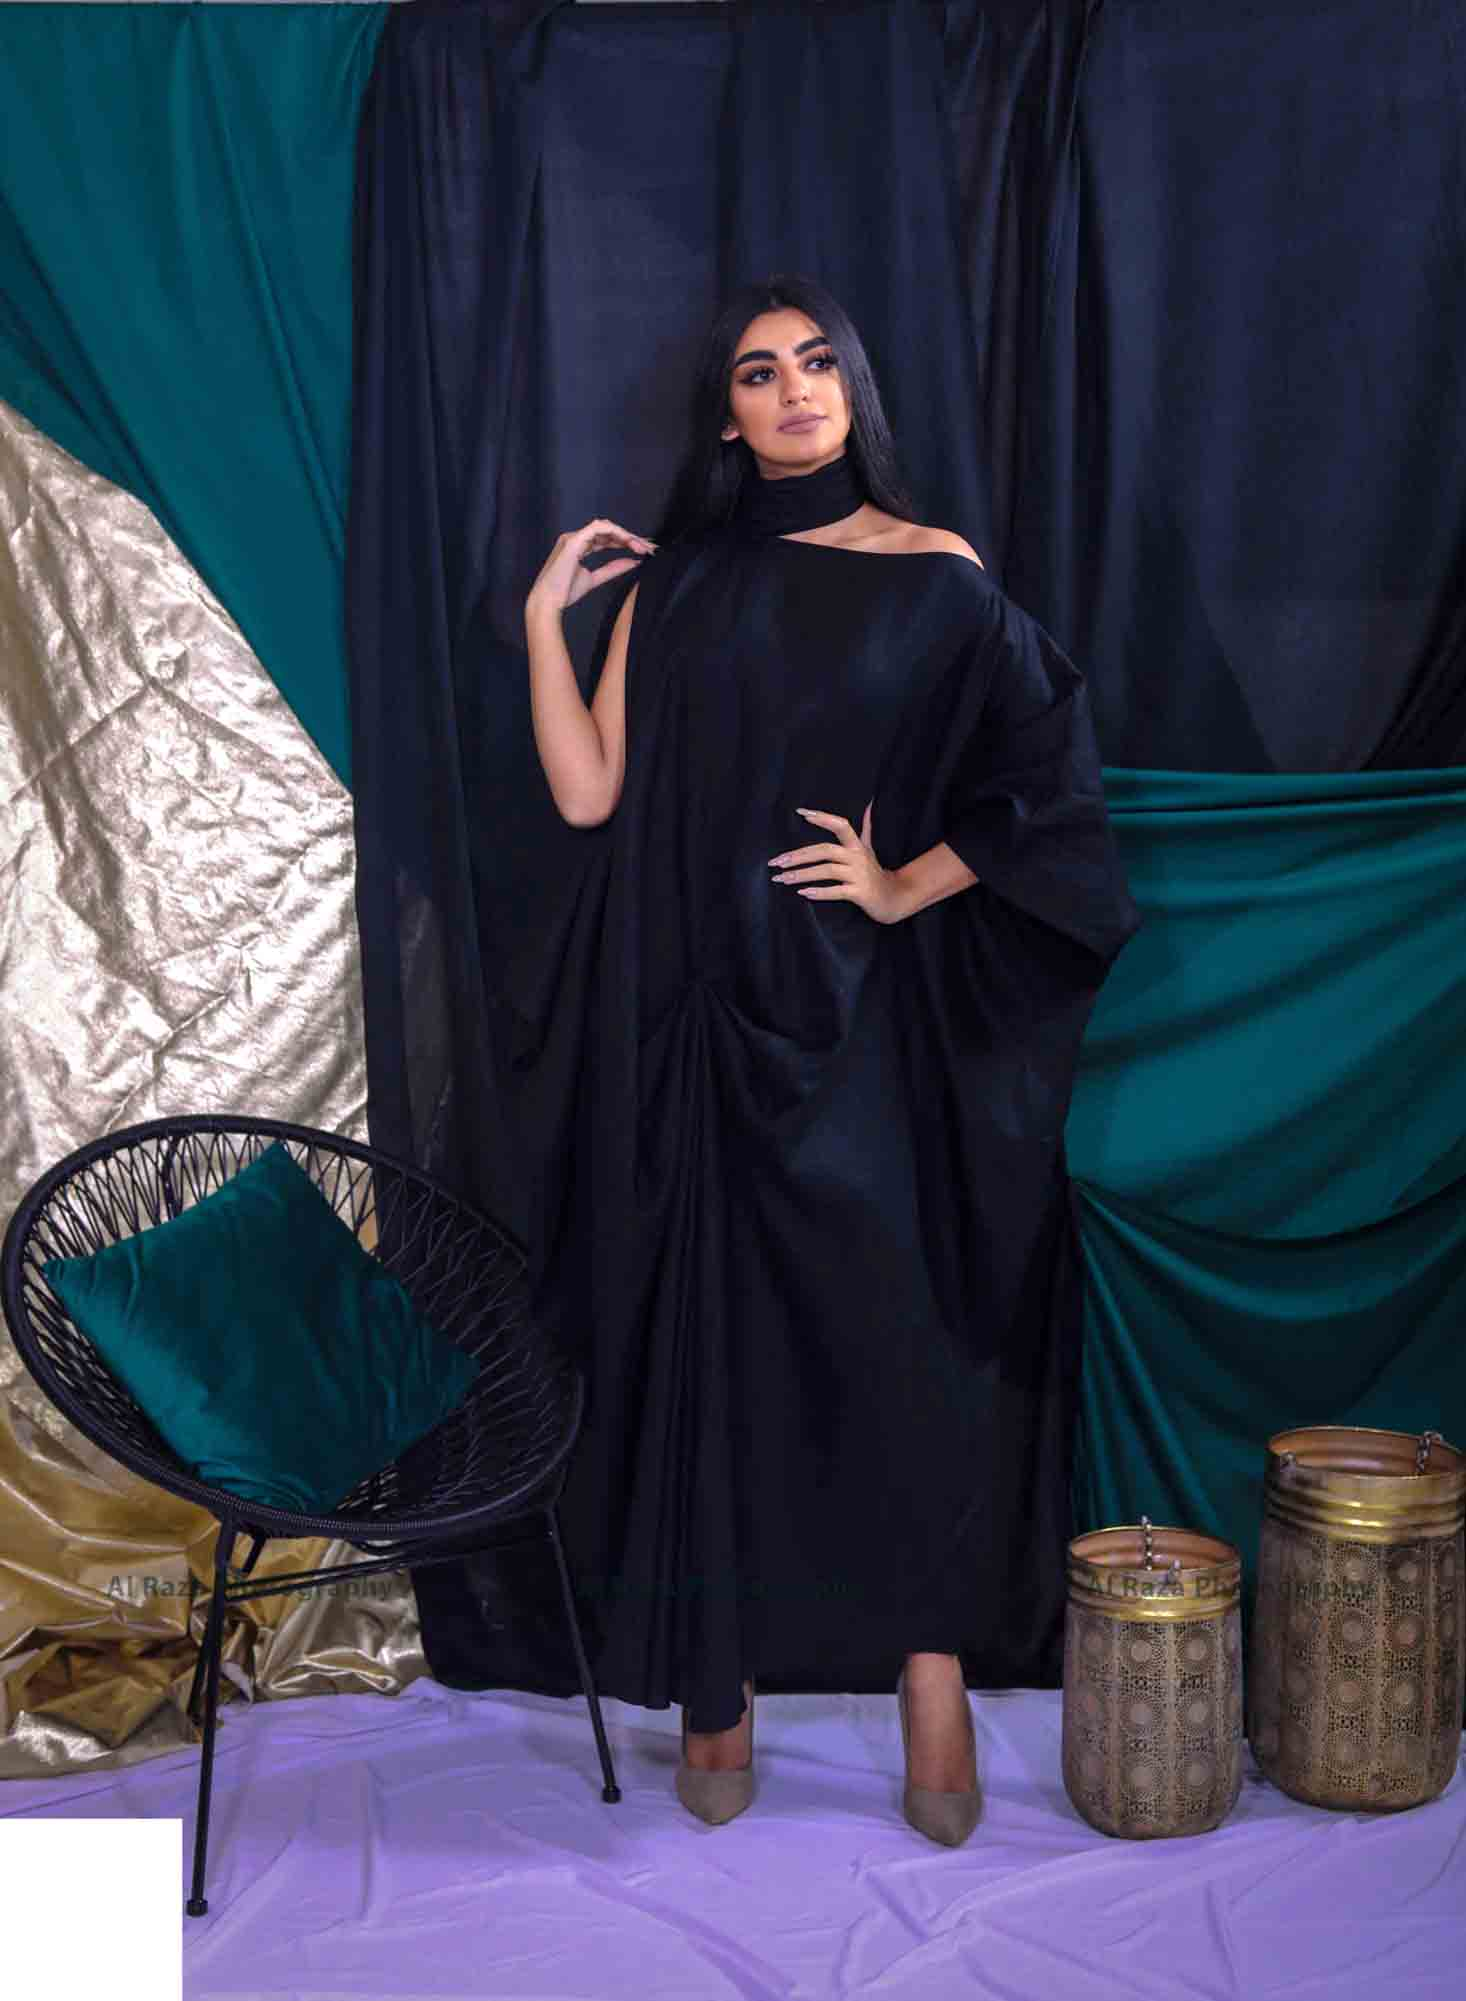 Outdoor Fashion Photography in Qatar